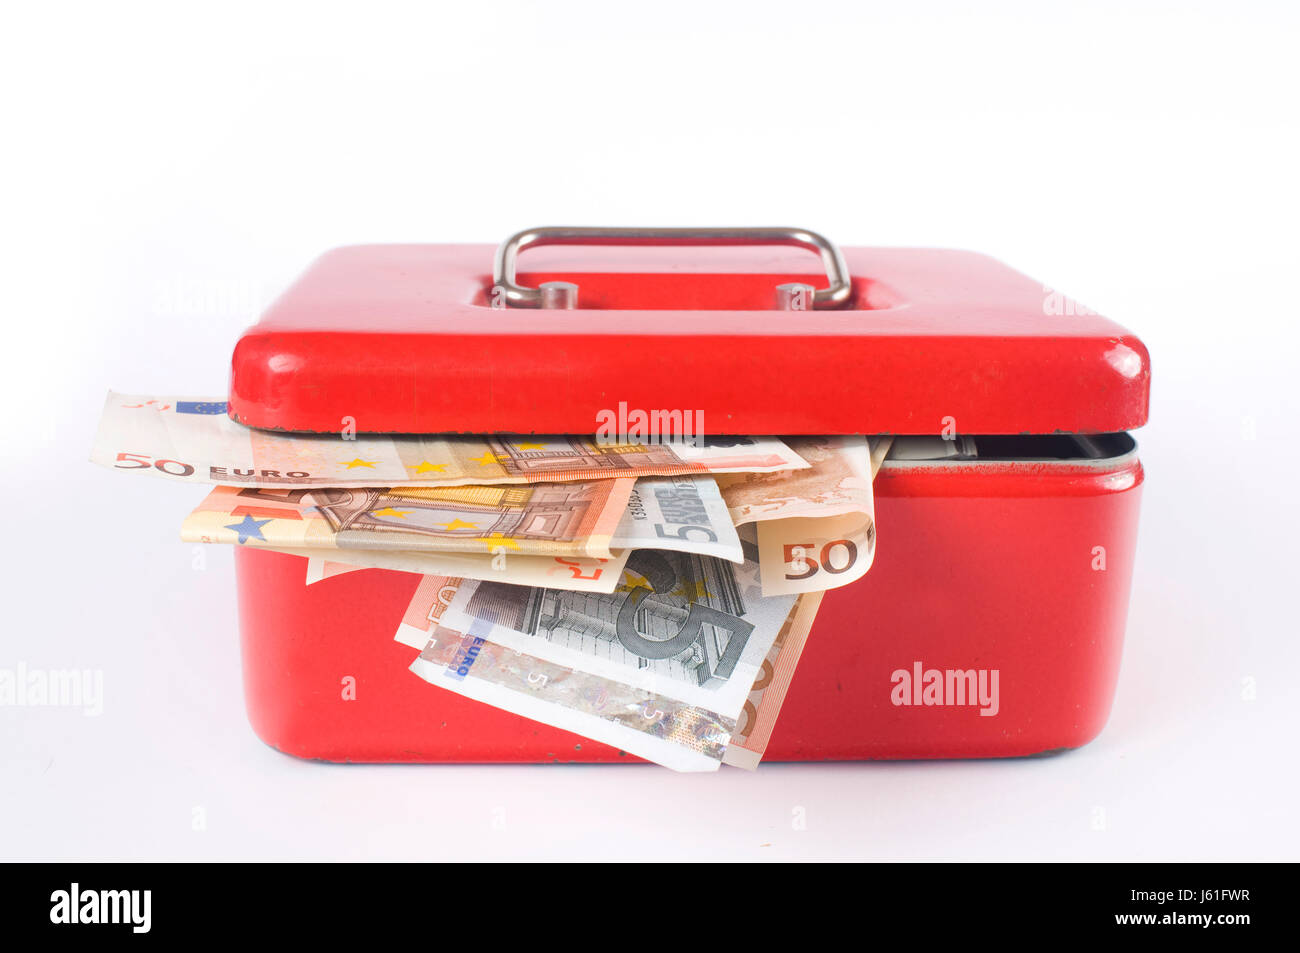 till certain protect protection safe ruddiness cash box petty cash